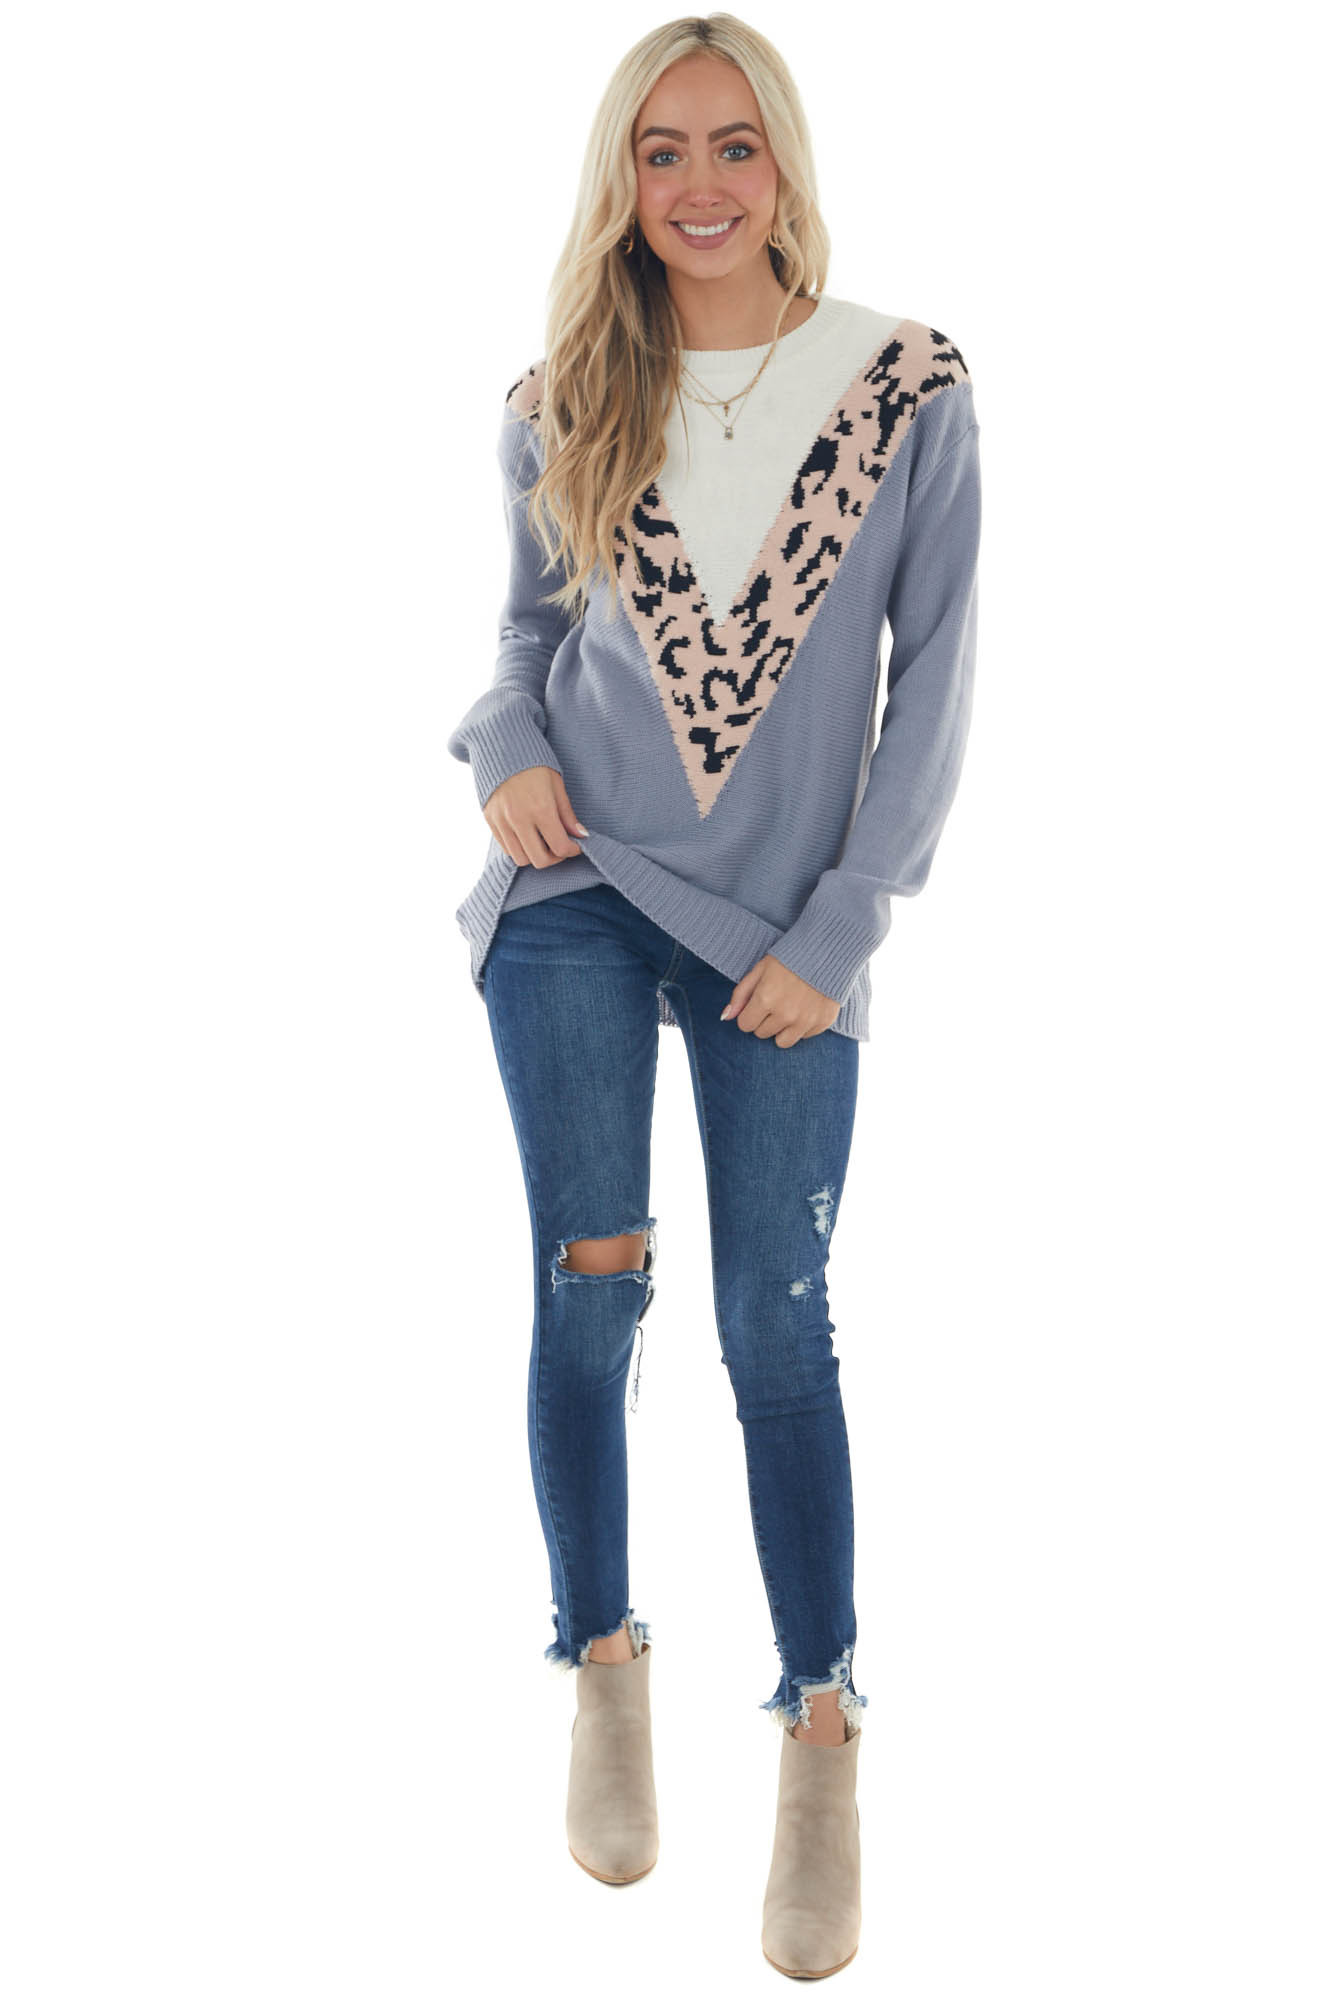 Slate and Blush Leopard Colorblock Sweater